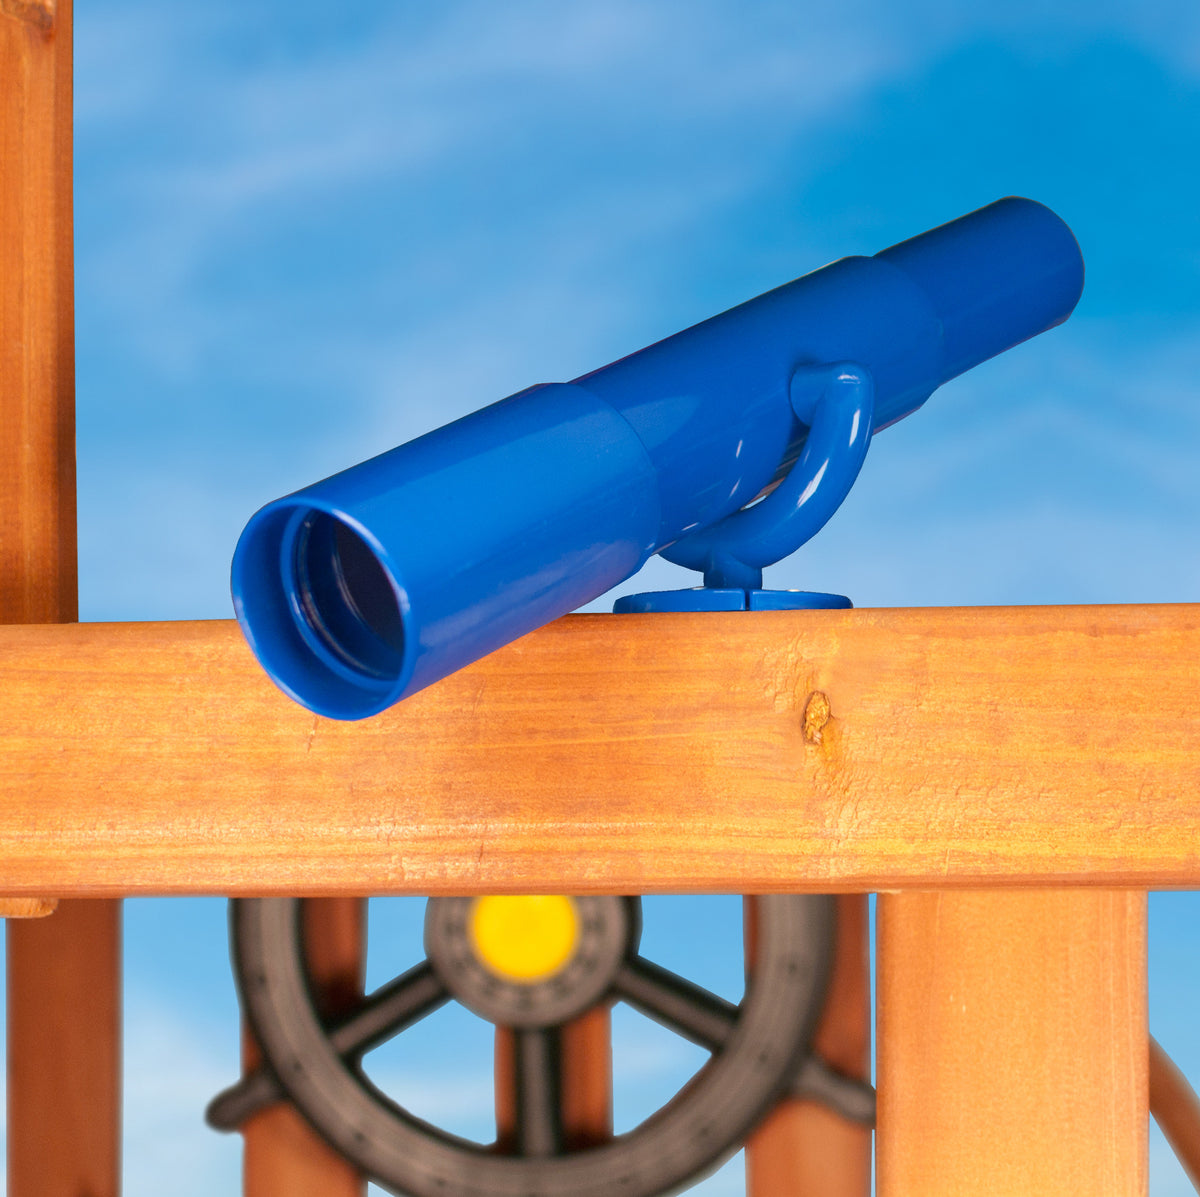 Gorilla-Playsets-Telescope-Blue-from-NJ-Swingsets